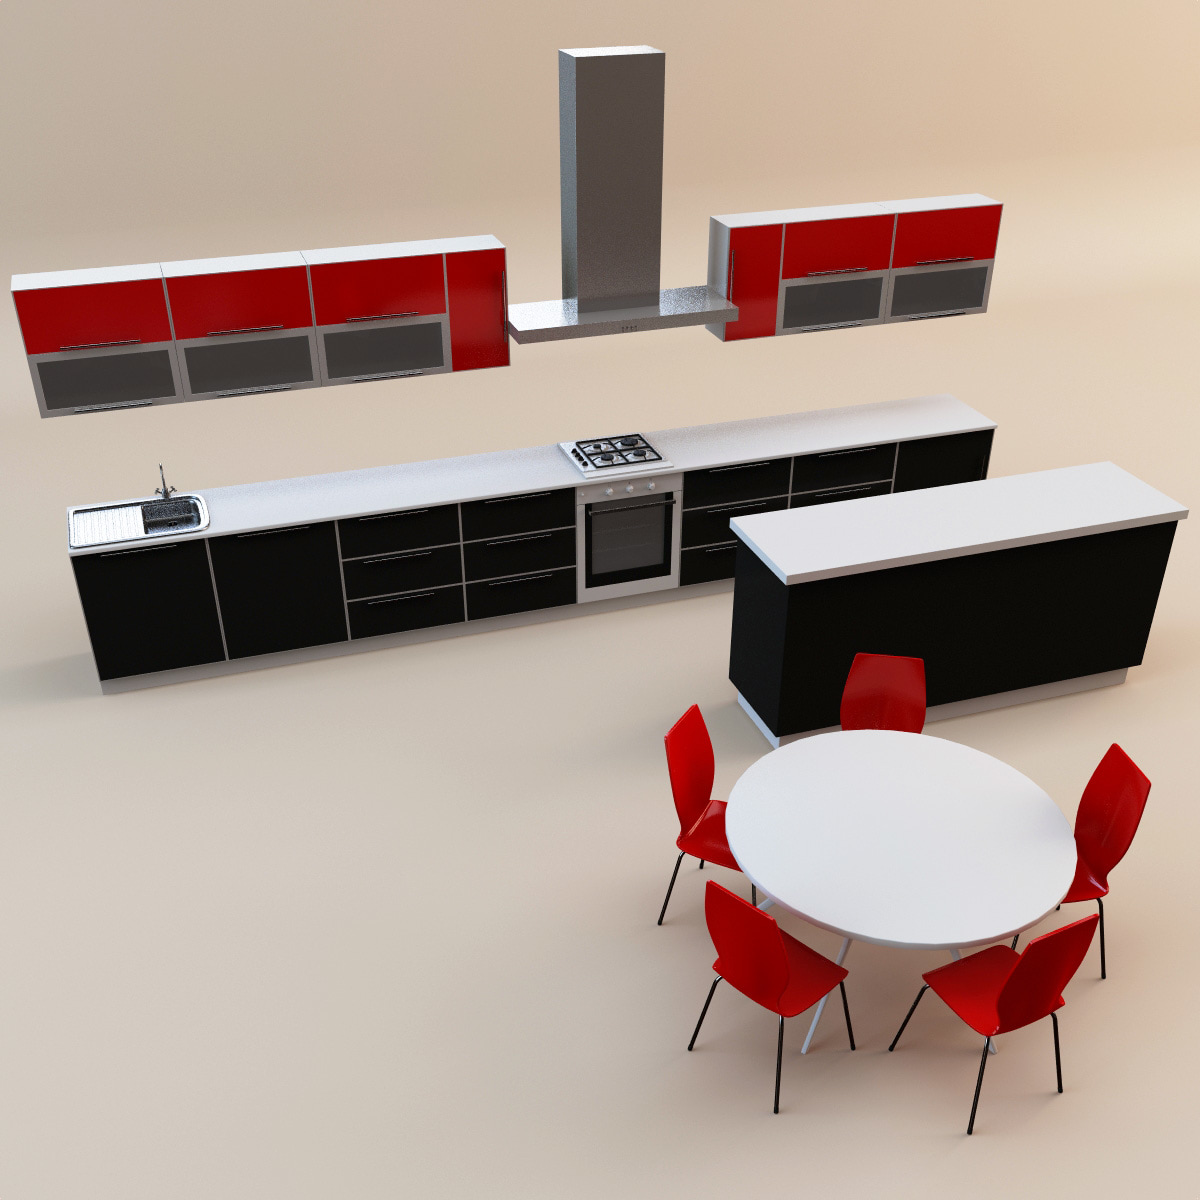 3d max kitchen 18